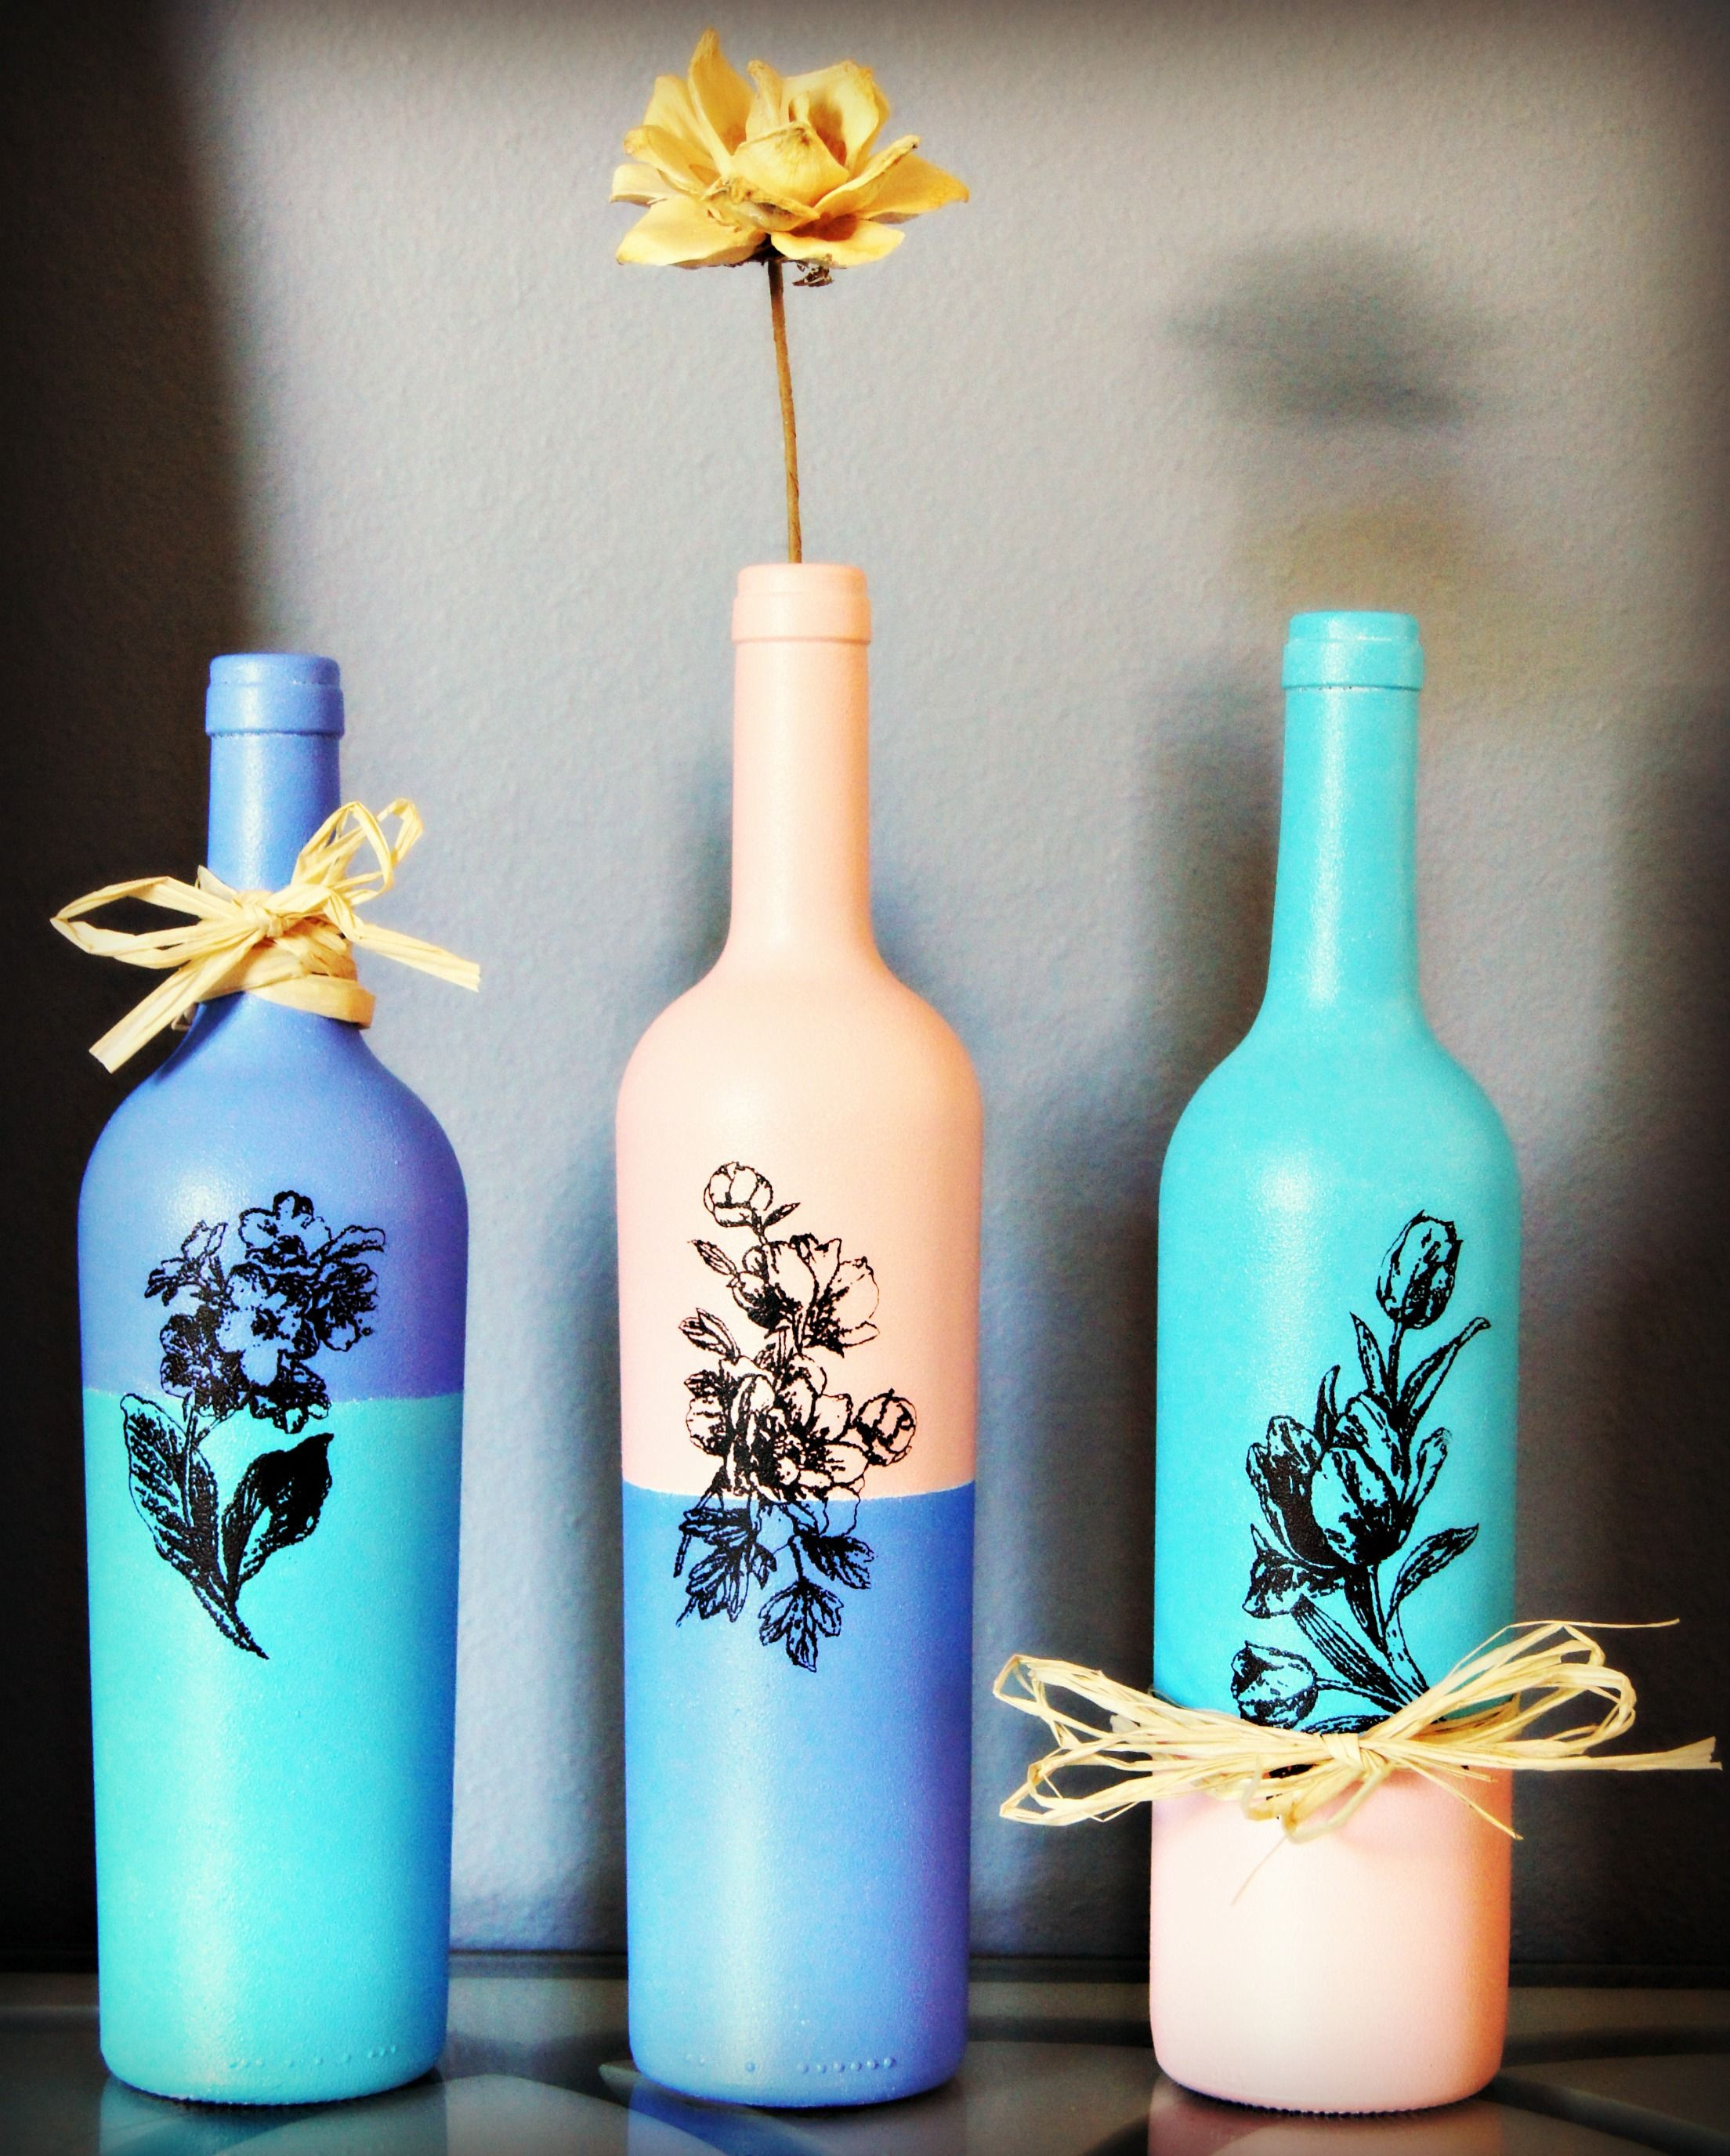 Acrylic Painted Wine Bottles For Your Home Décor.